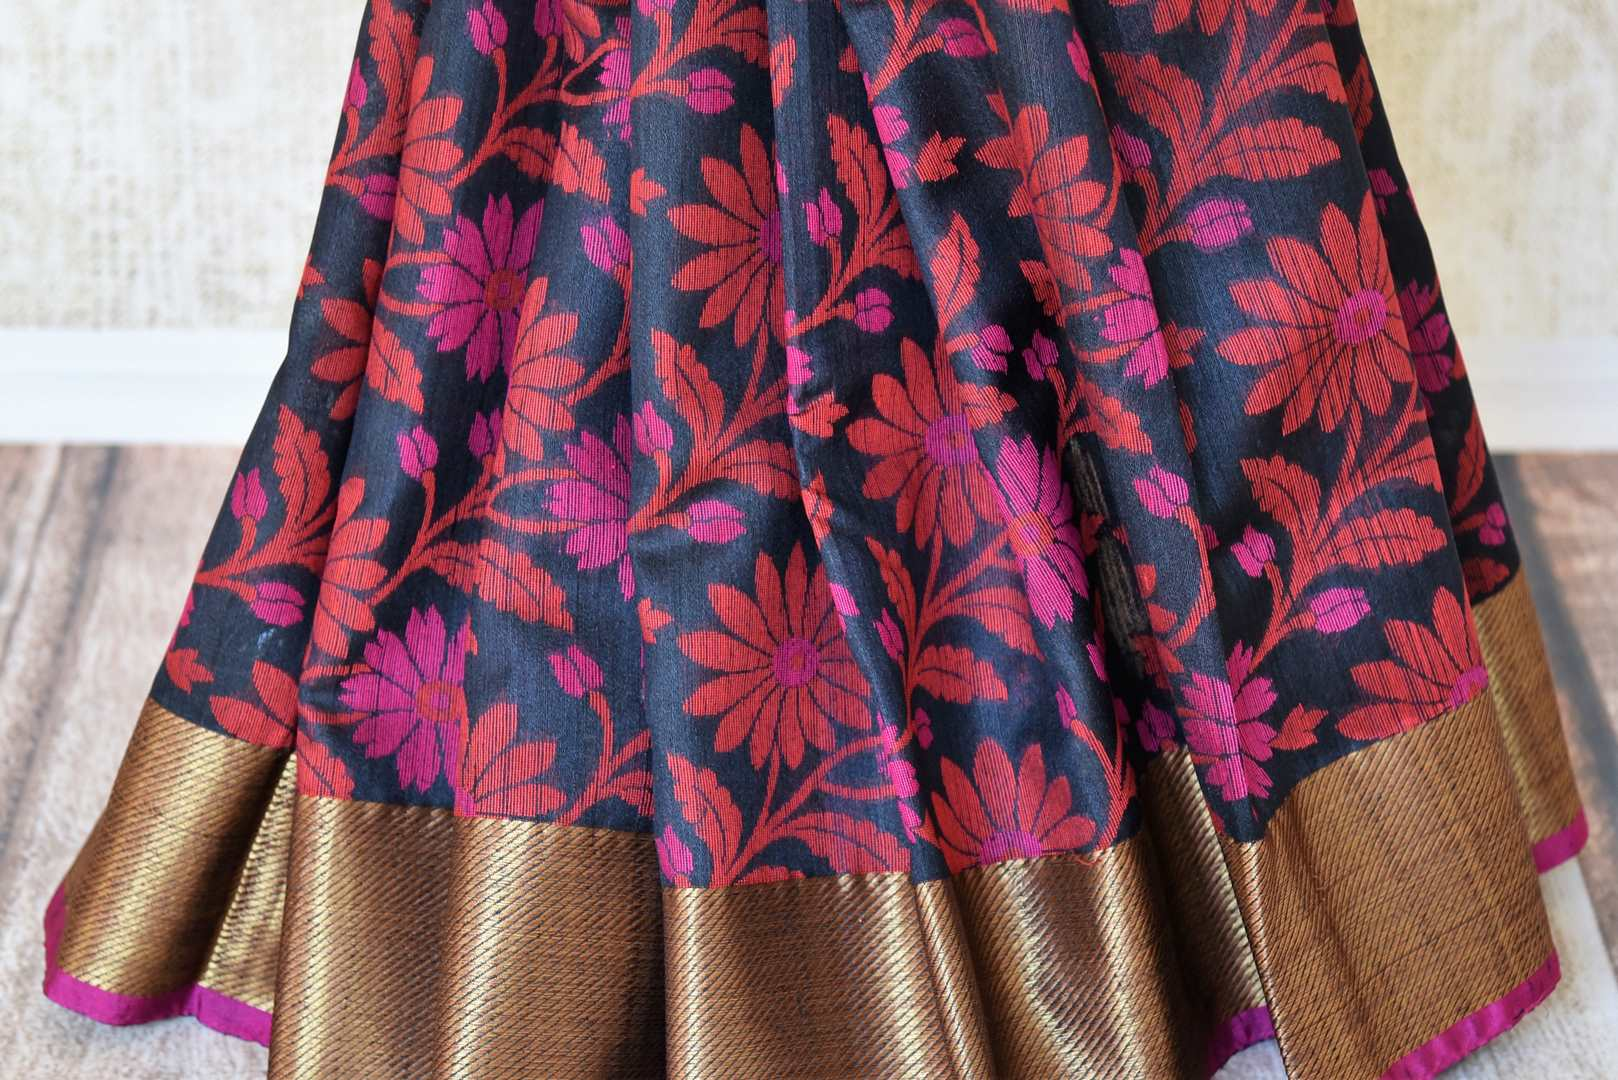 Buy black floral tussar Banarasi sari with zari border online in USA. Adorn yourself in glorious Indian clothing from Pure Elegance Indian clothing store in USA. We have an exclusive range of Indian designer sarees, traditional handloom saris, Banarasi sarees to make your Indian look absolutely captivating.-pleats